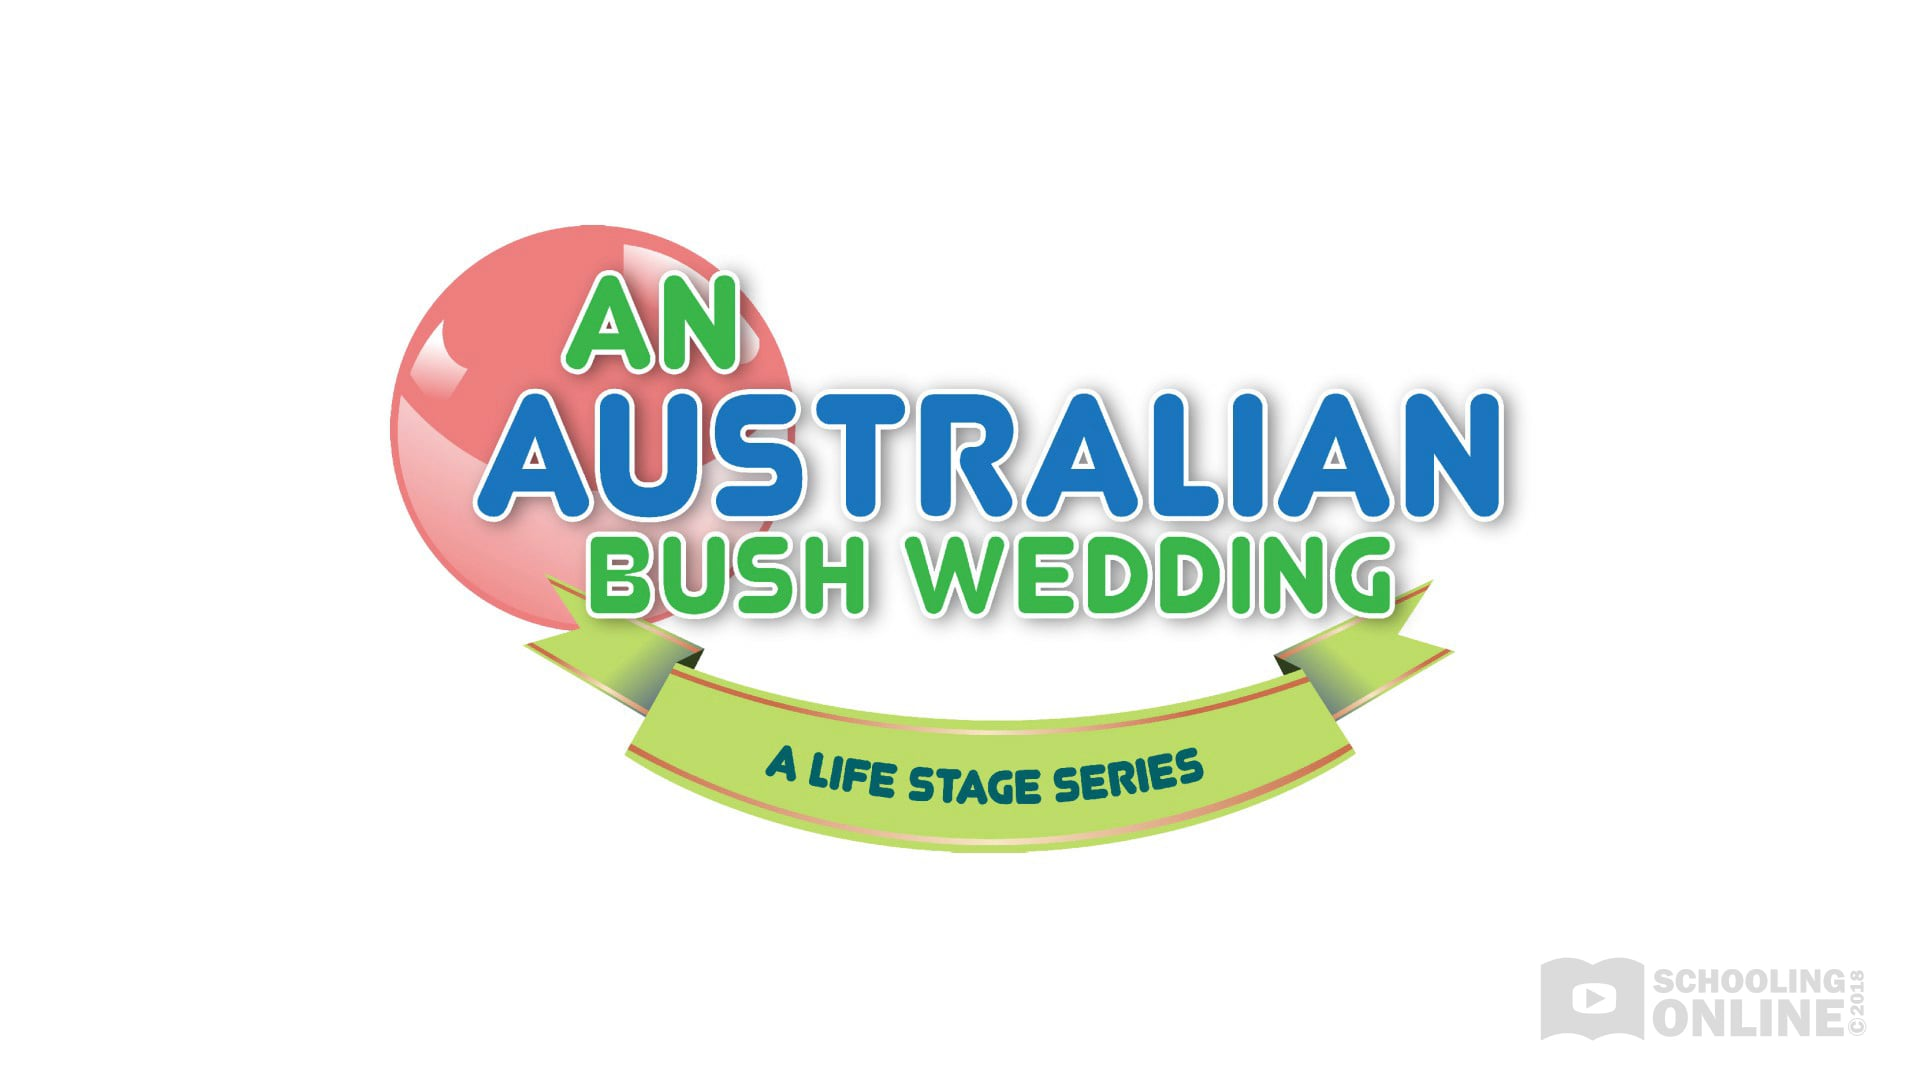 An Australian Bush Wedding - The Life Stage Series